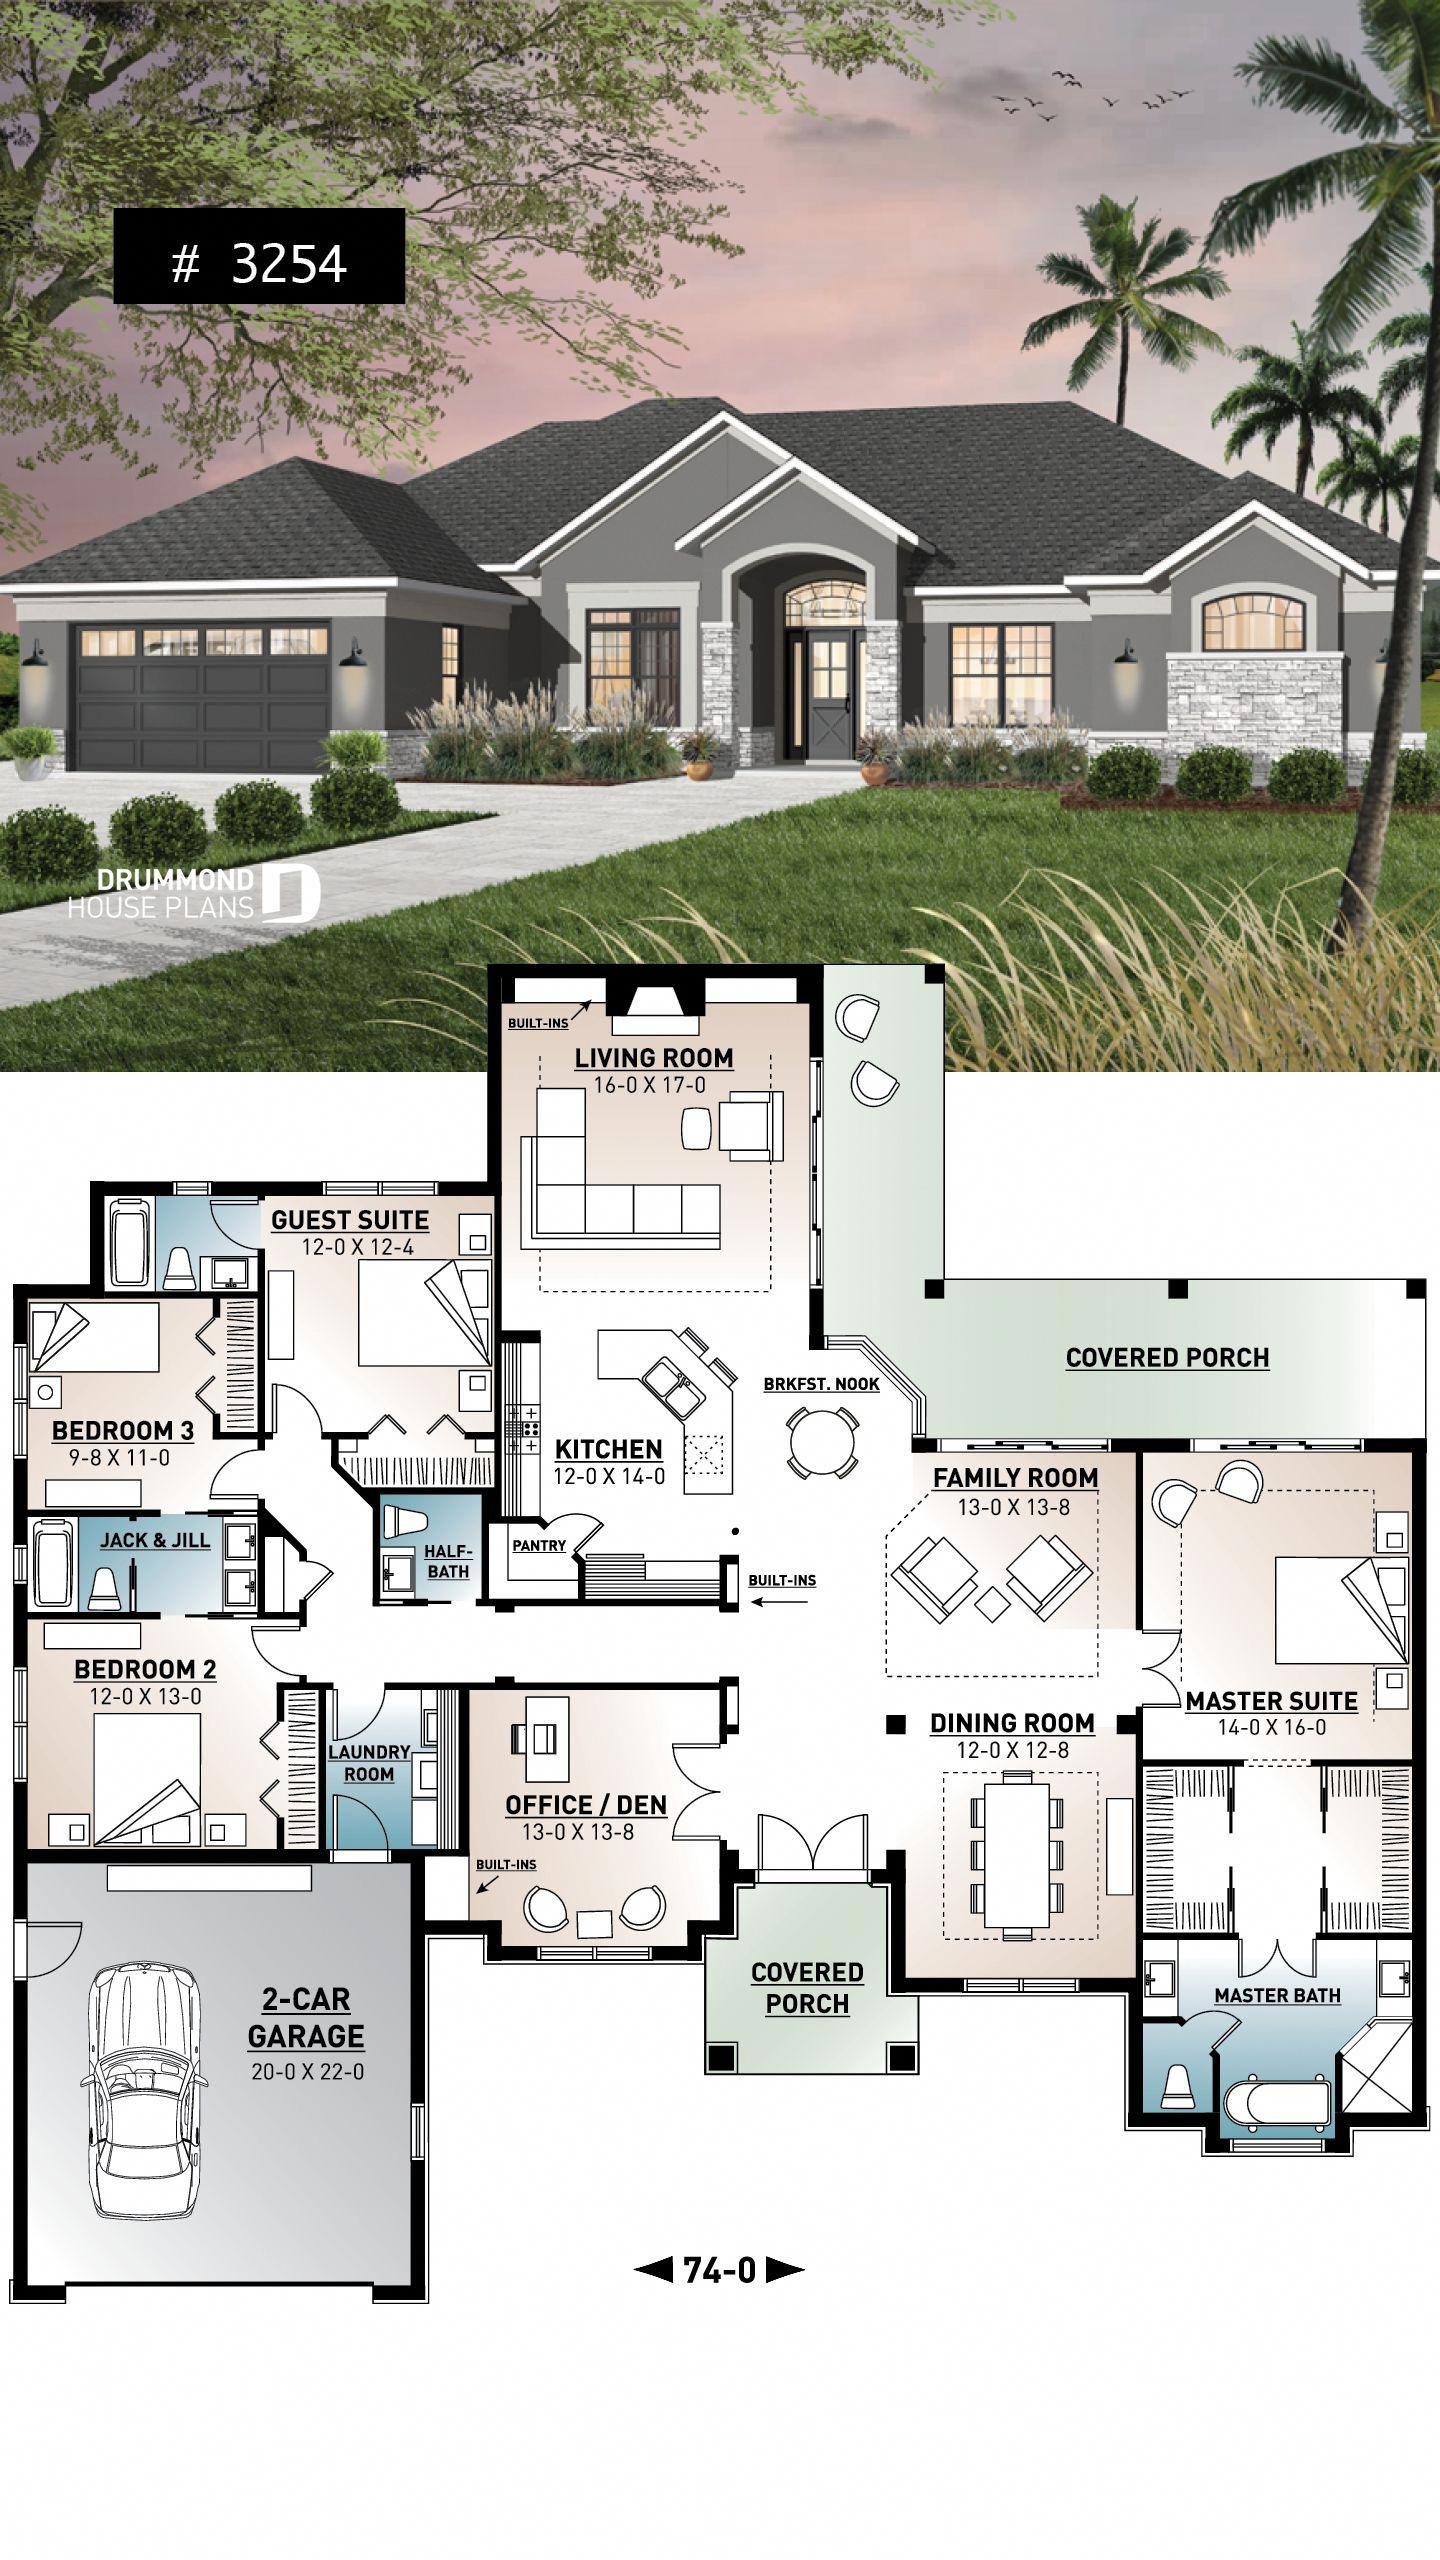 Consider These Fabulous Tips With Regard To Old Fashioned Countrycottagediydecor Sims House Plans House Layout Plans House Plans